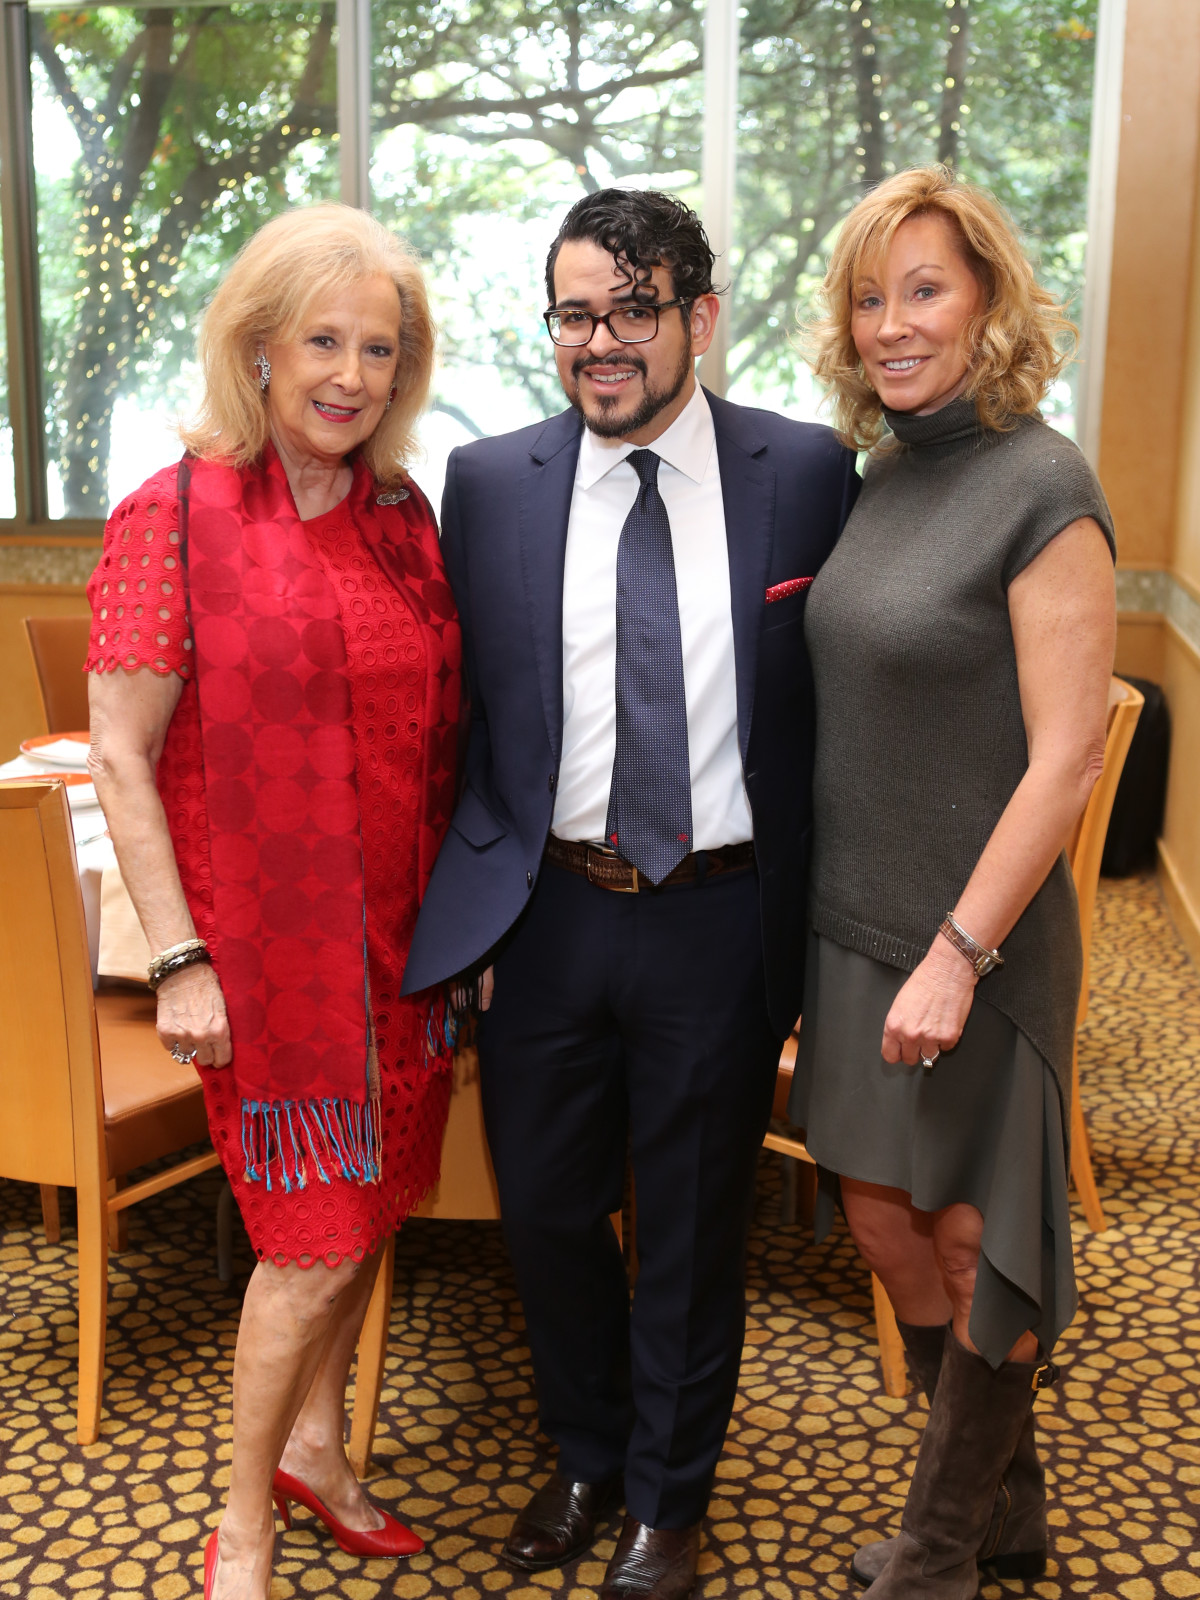 HGO Ball luncheon, March 2016, Mary Ann McKeithan, Mario Gudmundsson, Jackie Whitley